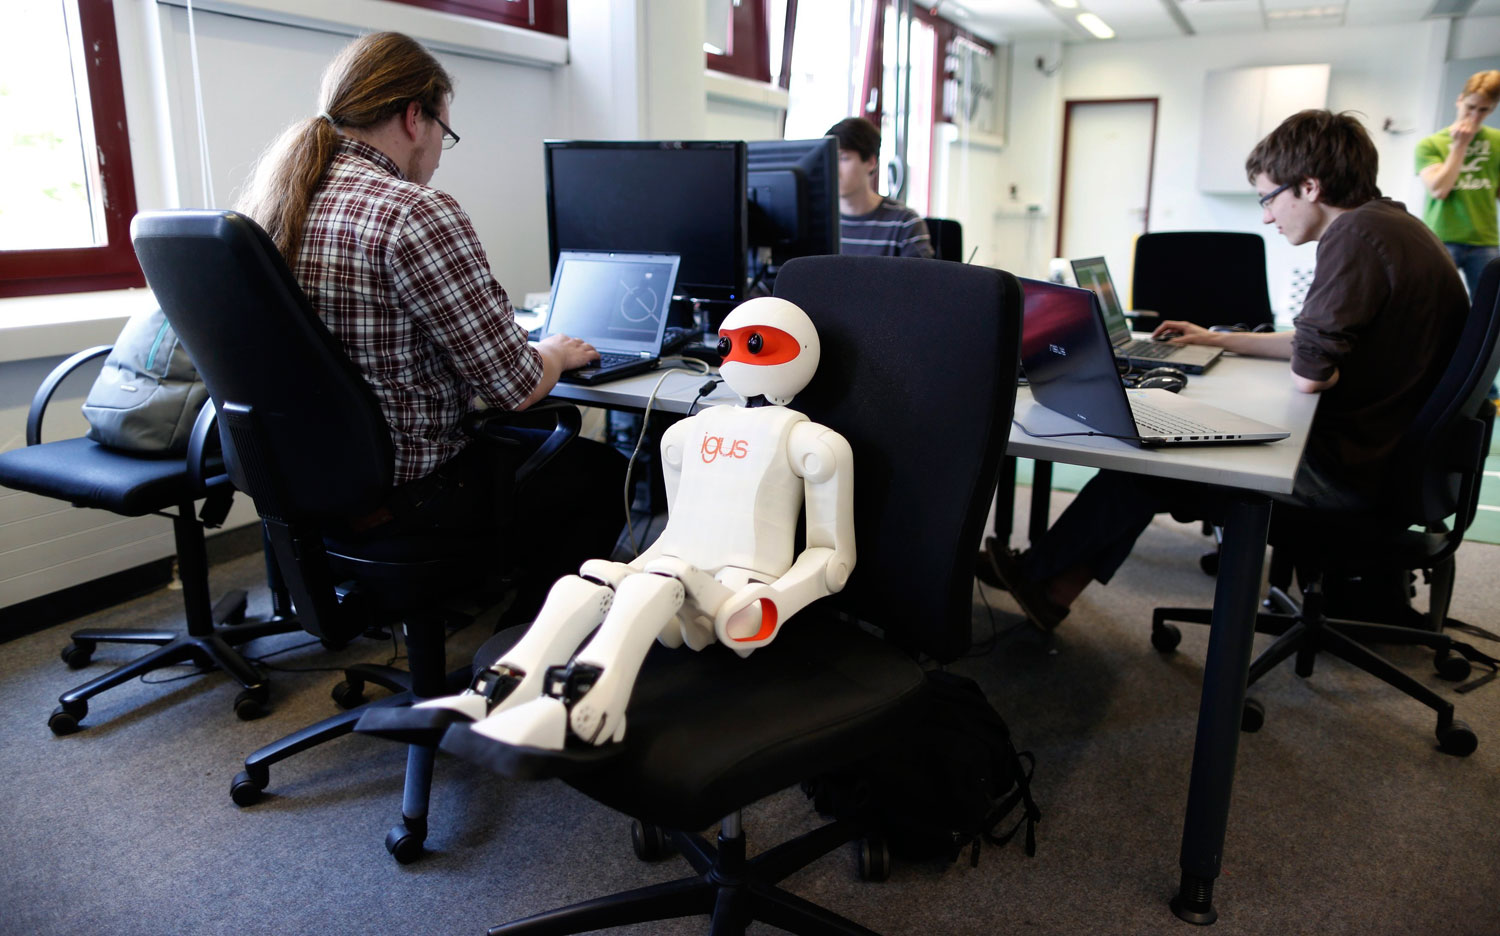 People work on the software of humanoid robots during a photo opportunity at the Institute for Computer Science at the University of Bonn in Bonn, Germany on July 3, 2014.